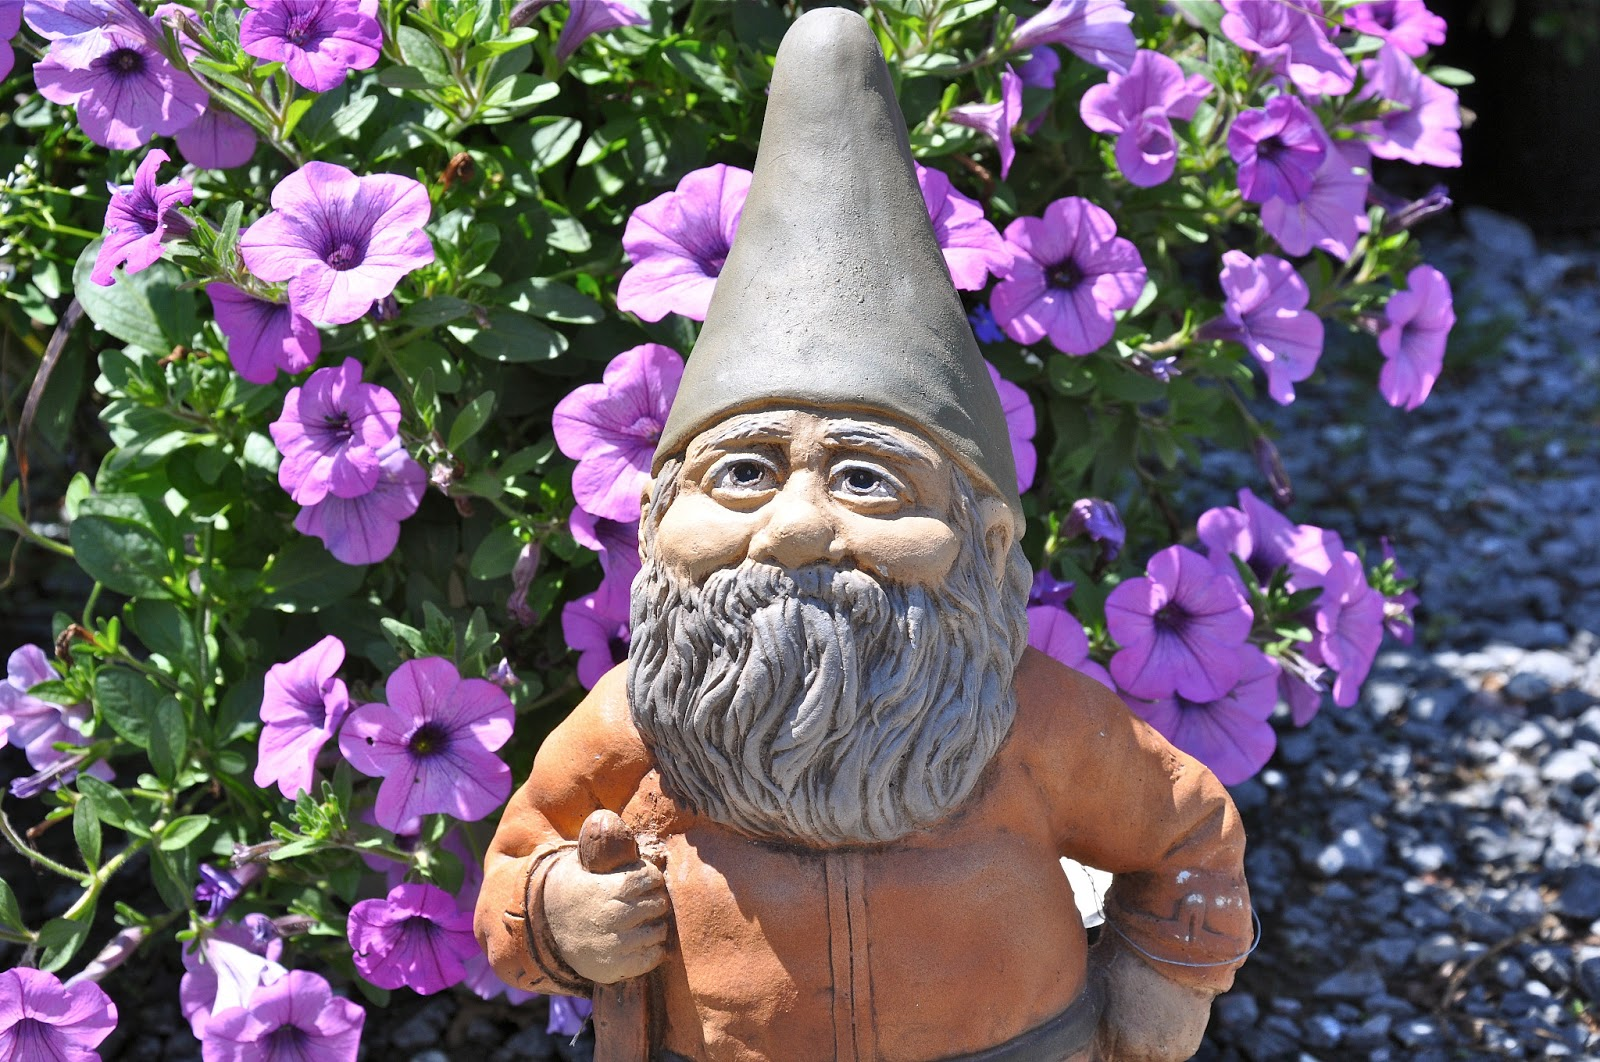 A Traditional No Gnomes Will Be Welcomed This Year At Chelsea